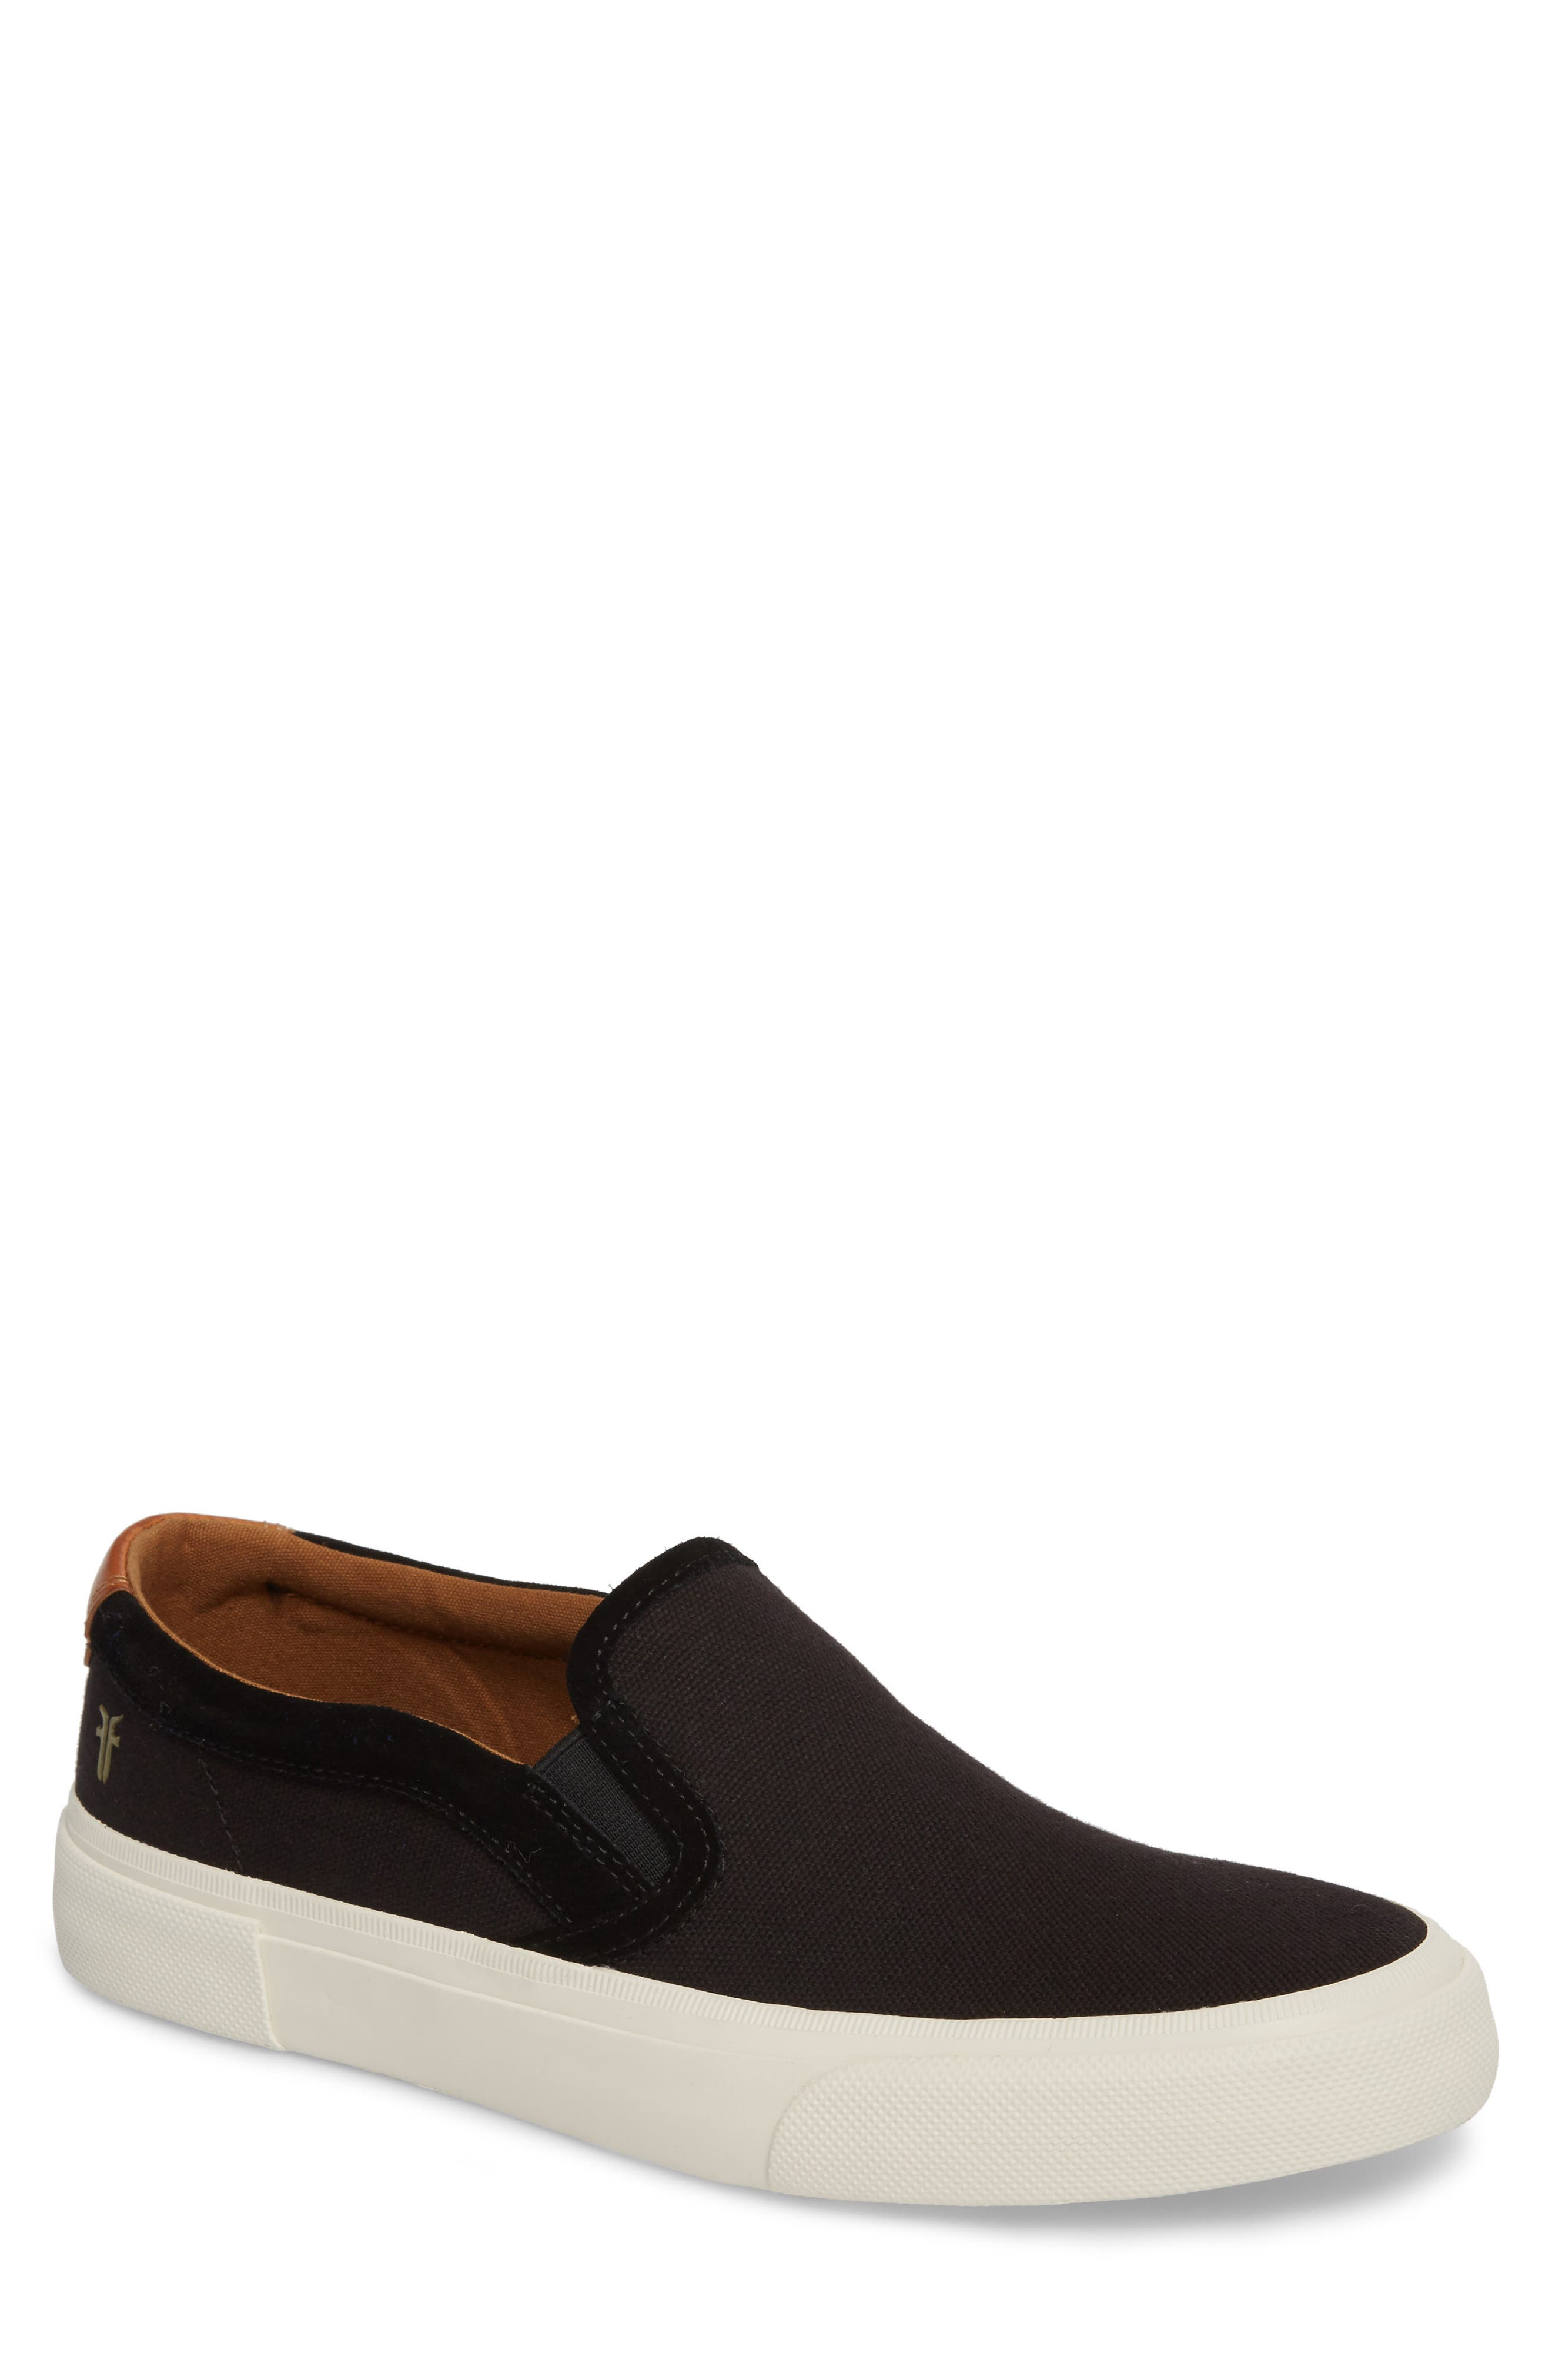 Ludlow Slip-On,                             Main thumbnail 1, color,                             001